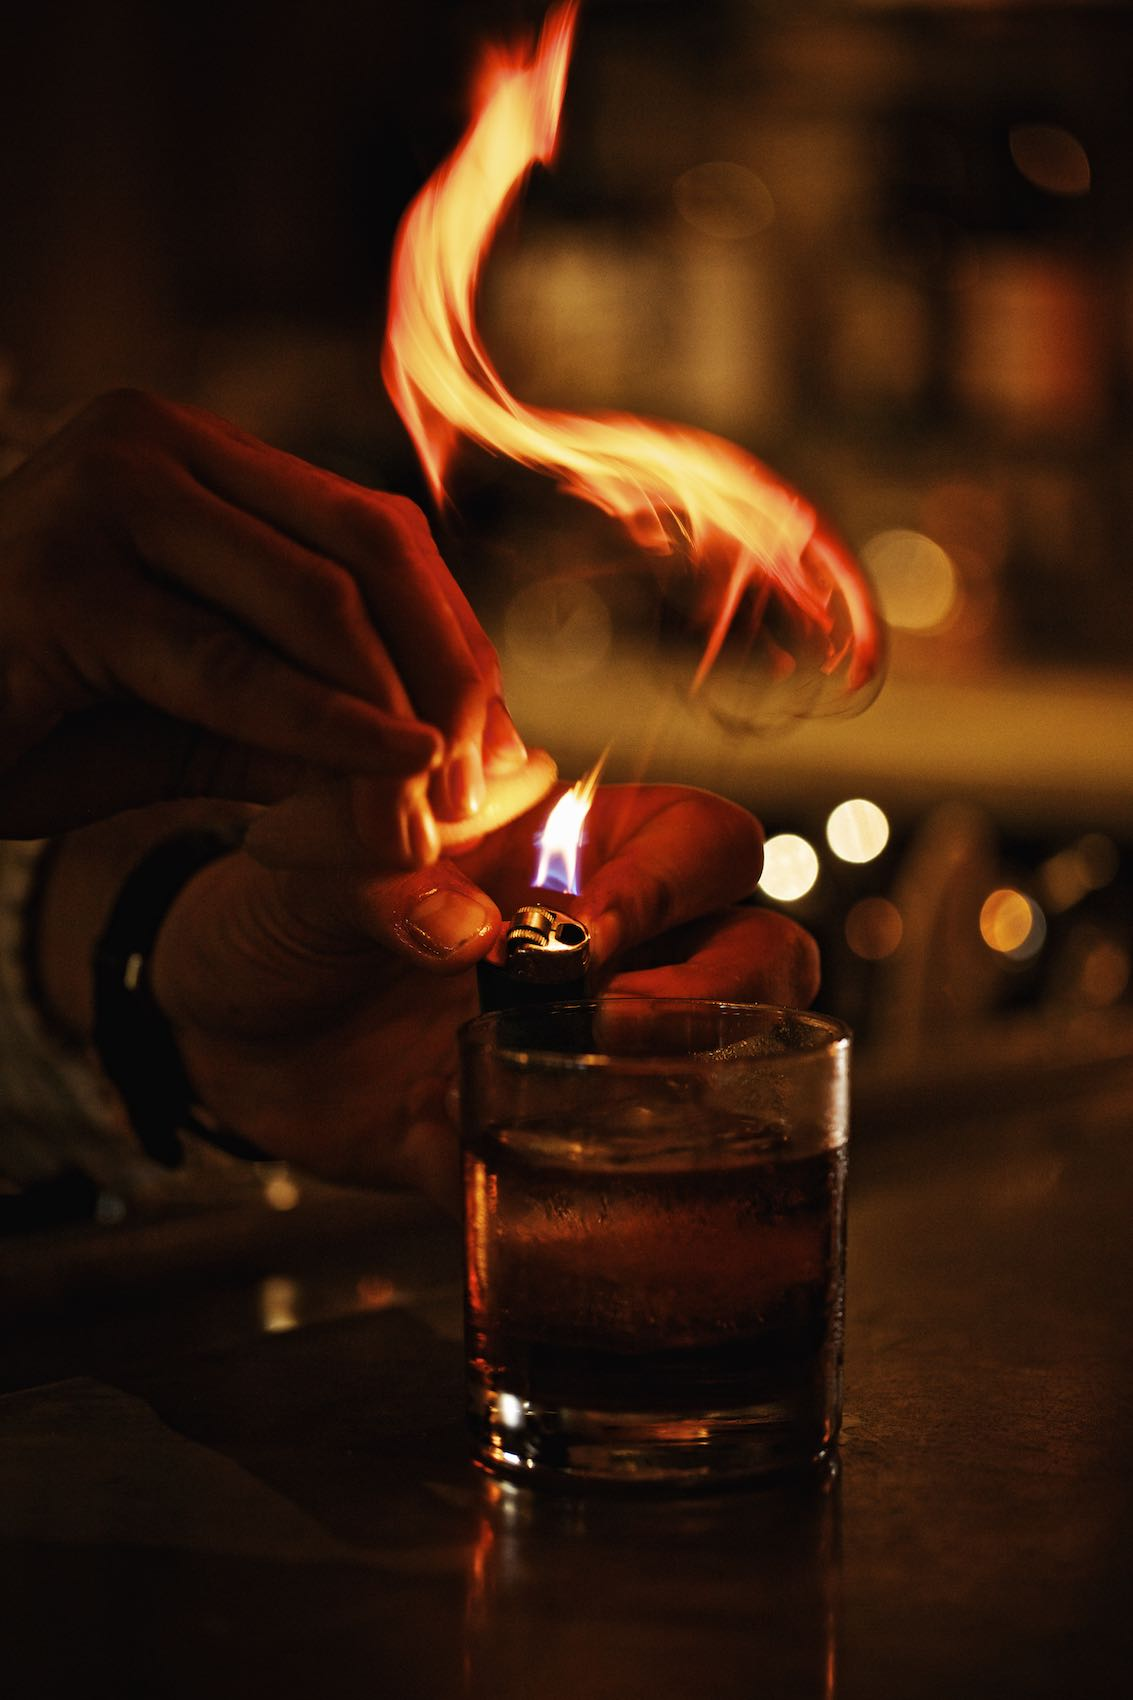 Jody Horton Photography - Bartender hands preparing a flaming cocktail.